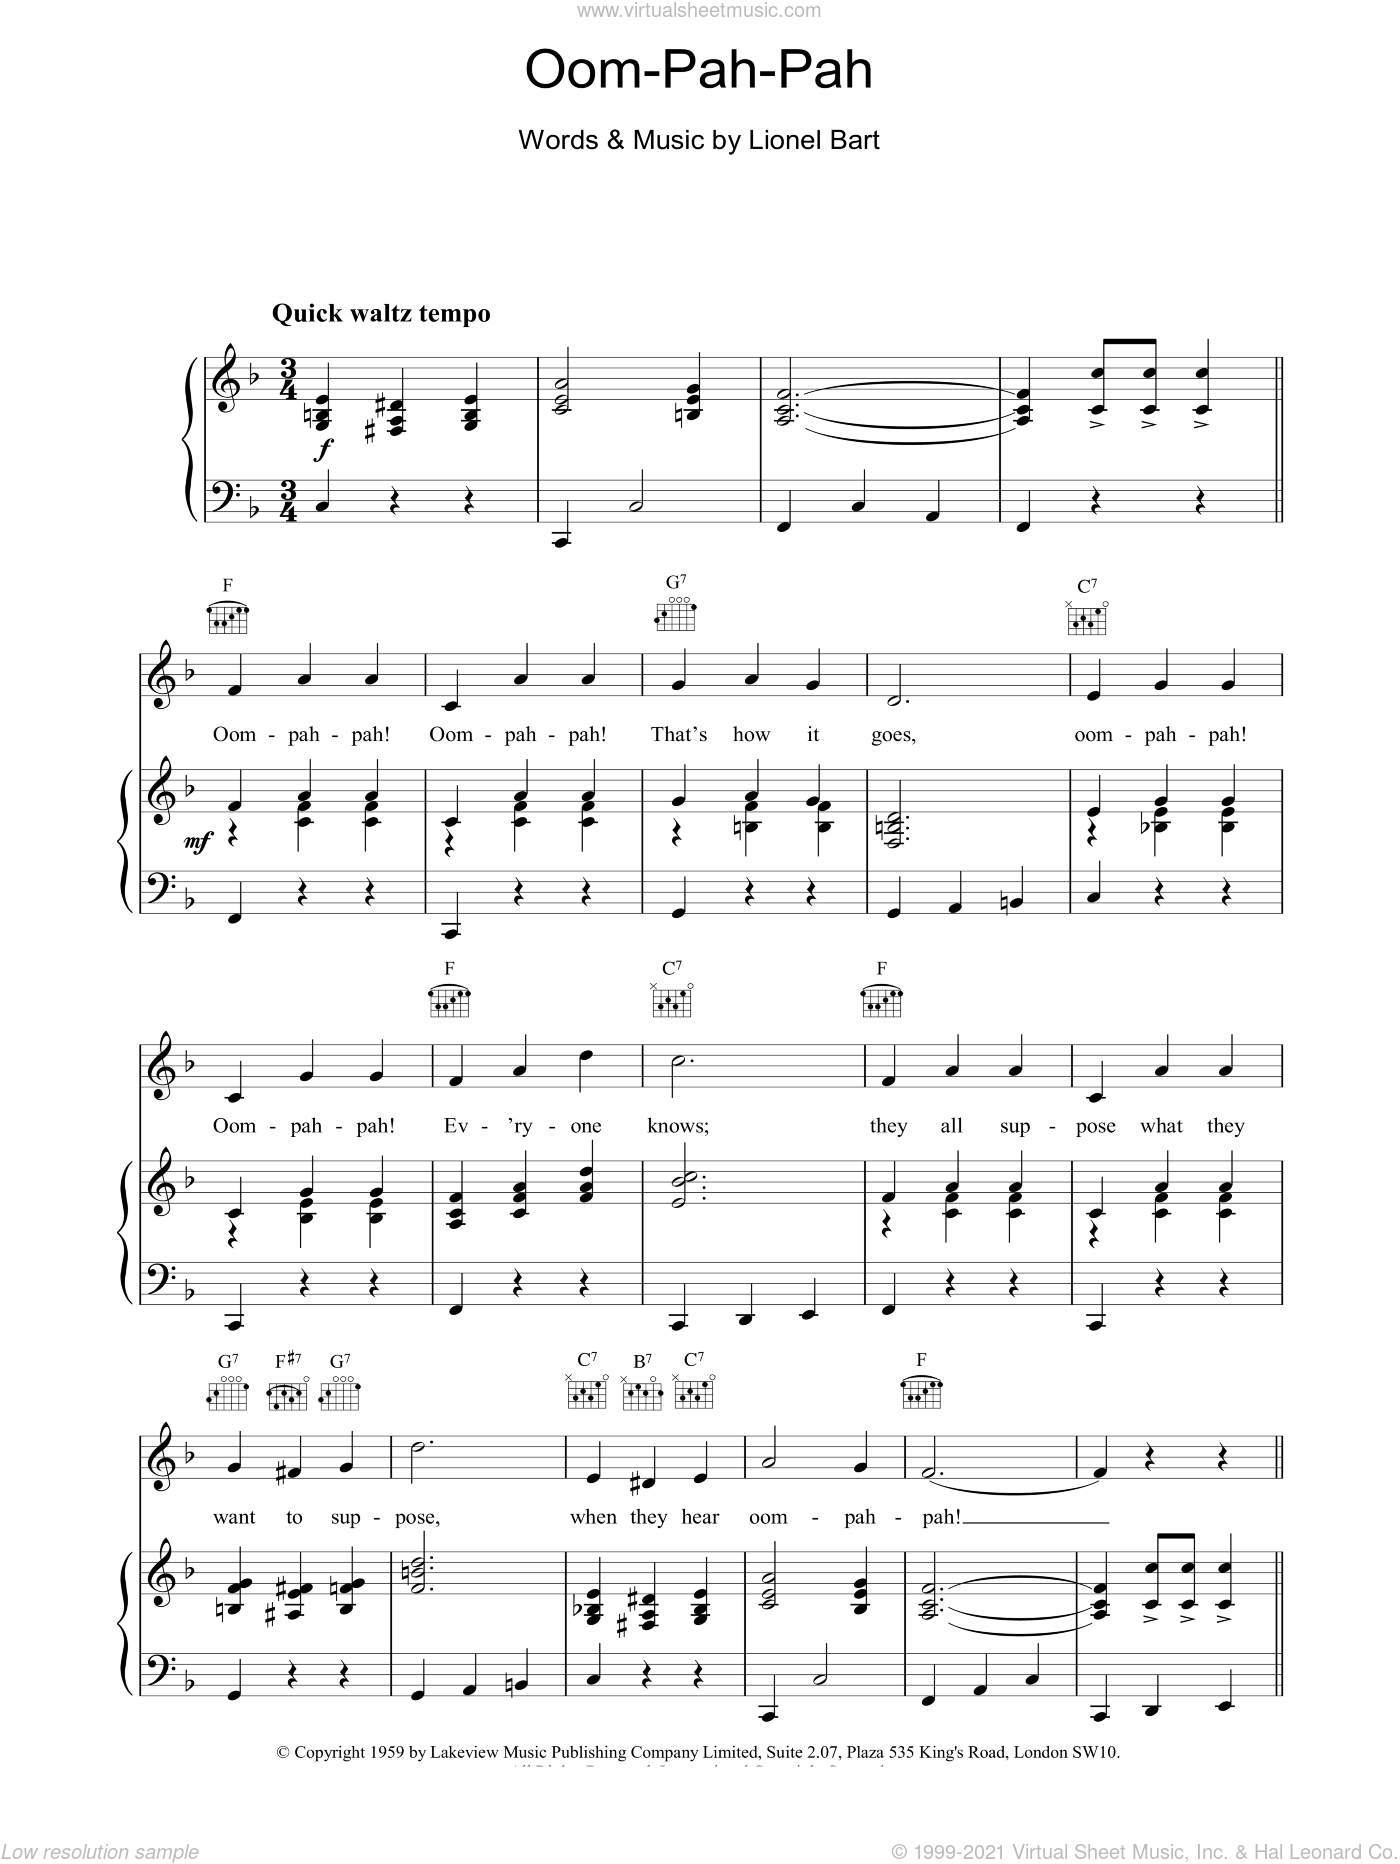 Oom-Pah-Pah sheet music for voice, piano or guitar by Lionel Bart. Score Image Preview.